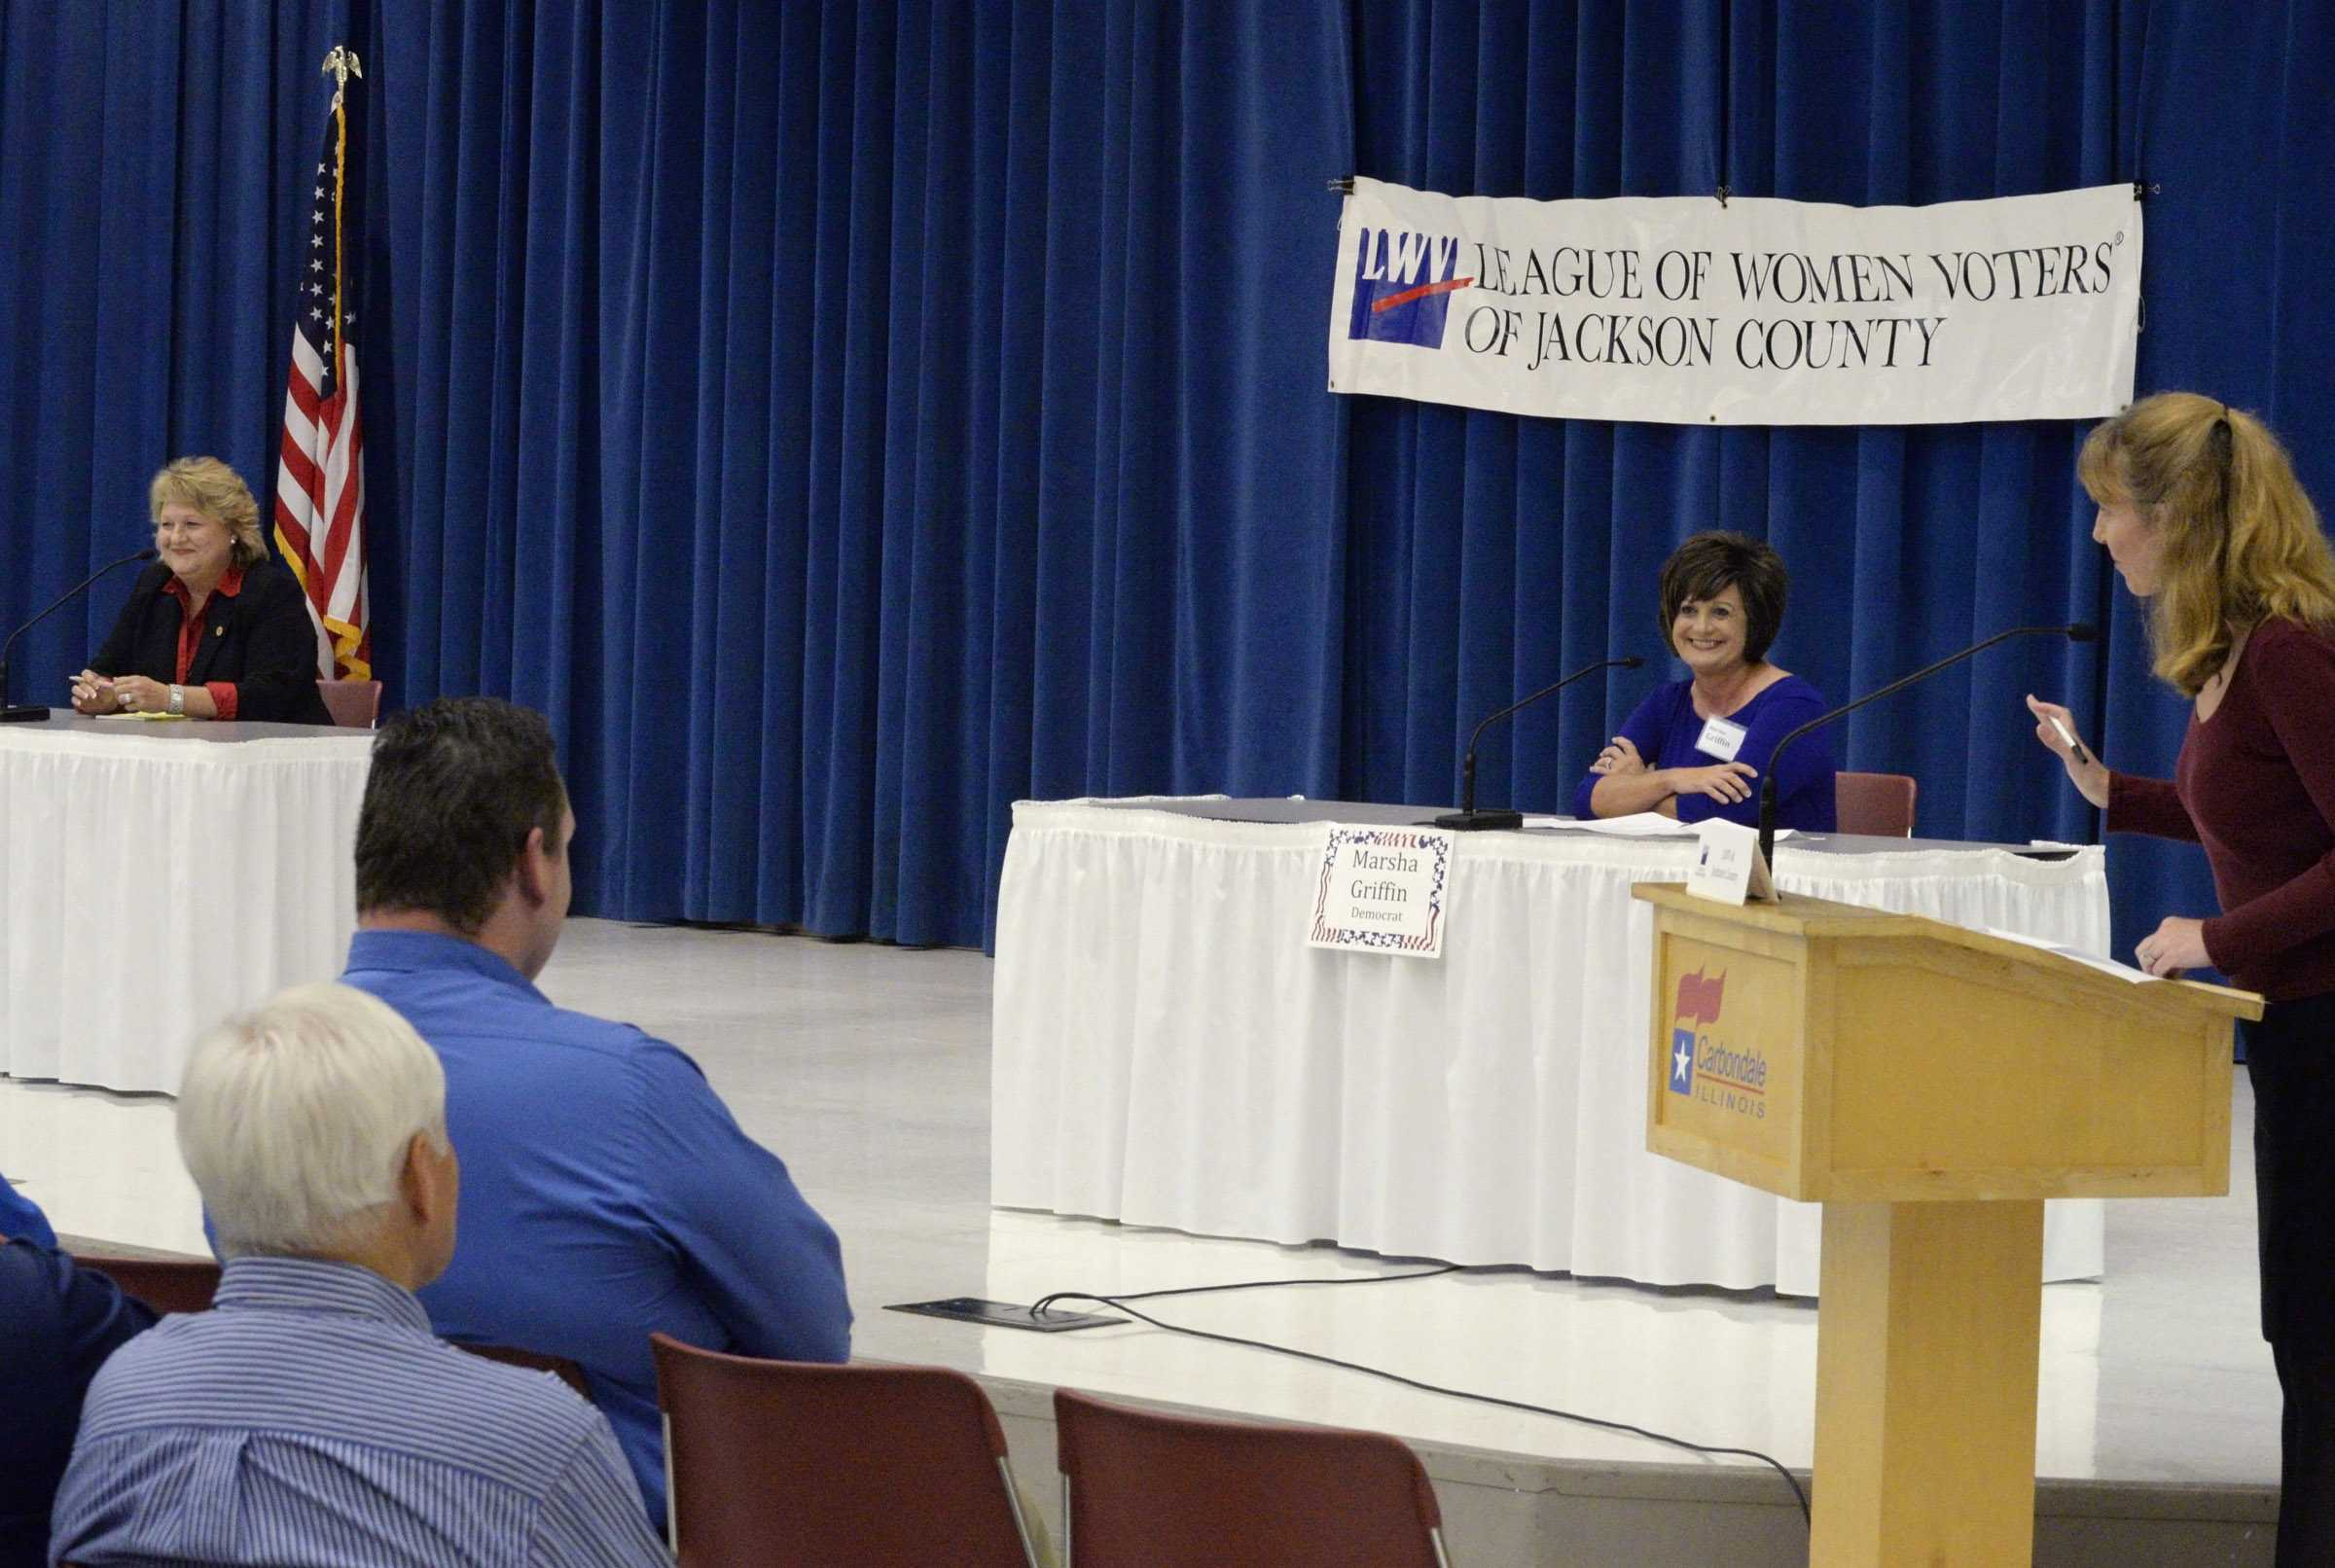 Forum moderator Laura Van Abbema, right, explains some ground rules for answering questions to Republican Rep. Terri Bryant, left, and Democratic challenger Marsha Griffin, center, both candidates for the Illinois House of Representatives District 115 seat, Friday, Oct. 14, 2016, at the Carbondale Civic Center. (Bill Lukitsch | @lukitsbill)